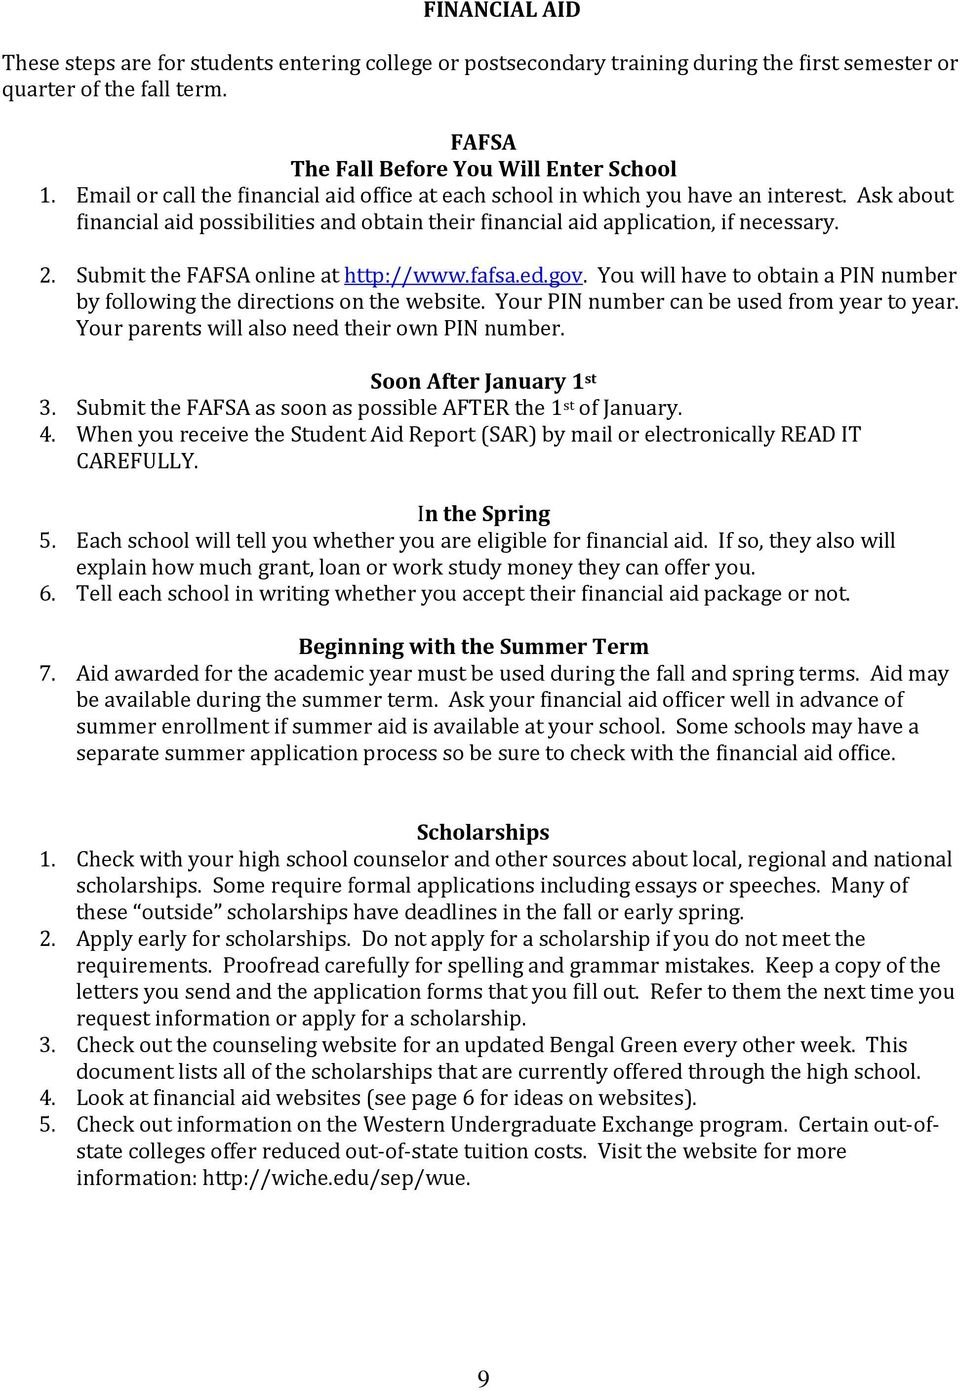 Submit the FAFSA online at http://www.fafsa.ed.gov. You will have to obtain a PIN number by following the directions on the website. Your PIN number can be used from year to year.